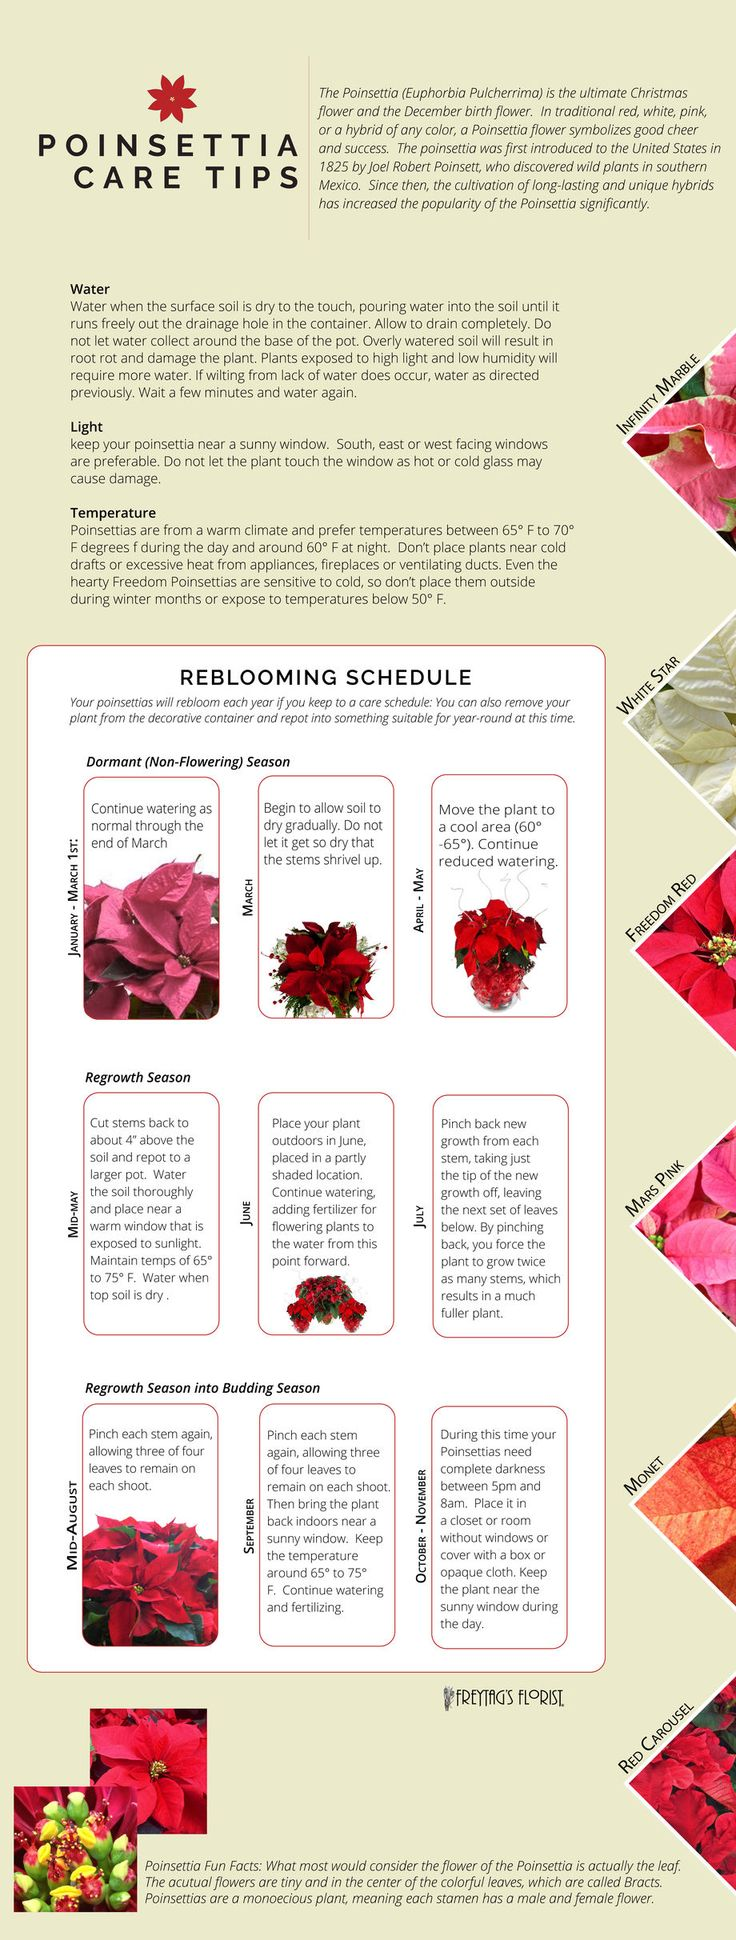 Poinsettia care & reblooming tips